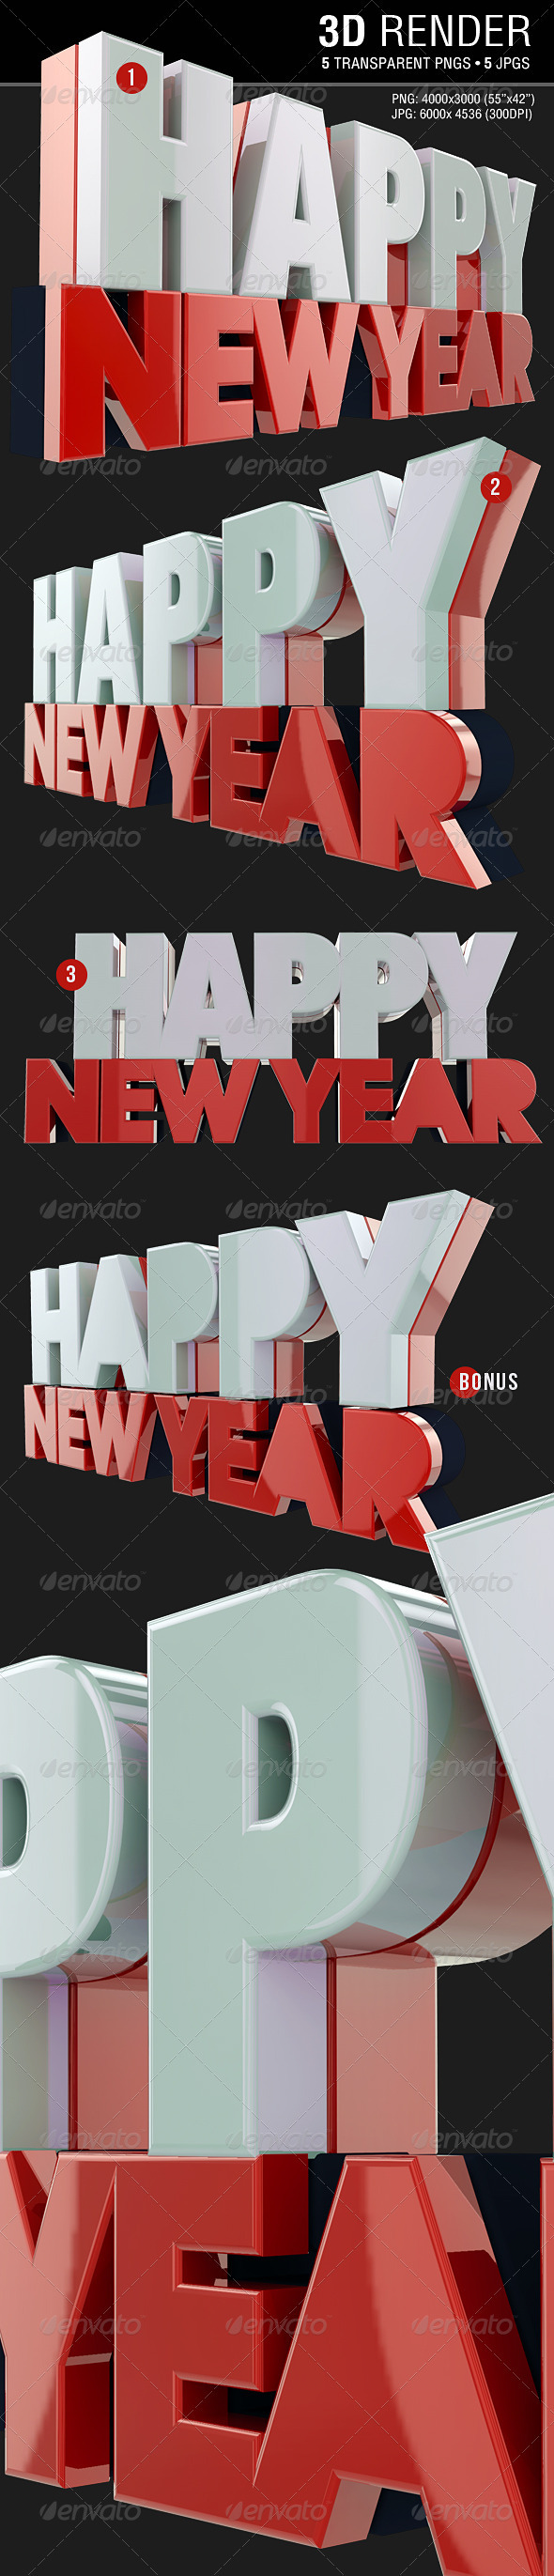 Happy New Year 3D Render - Text 3D Renders